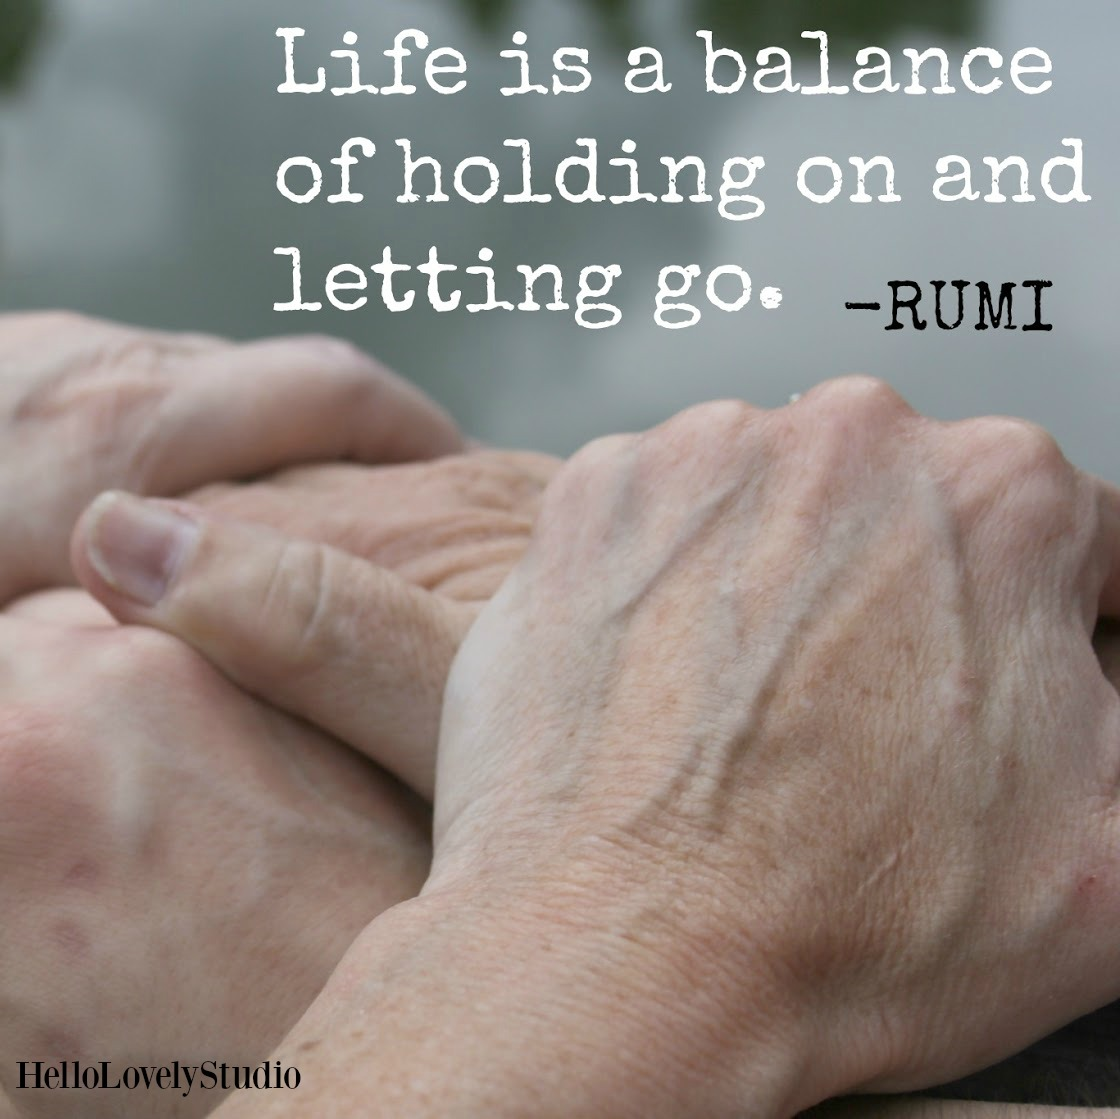 Photo of hands by Michele of Hello Lovely Studio and Rumi quote. Life is a balance of holding on and letting go. #hellolovelystudio #hands #rumi #encouragement #quote